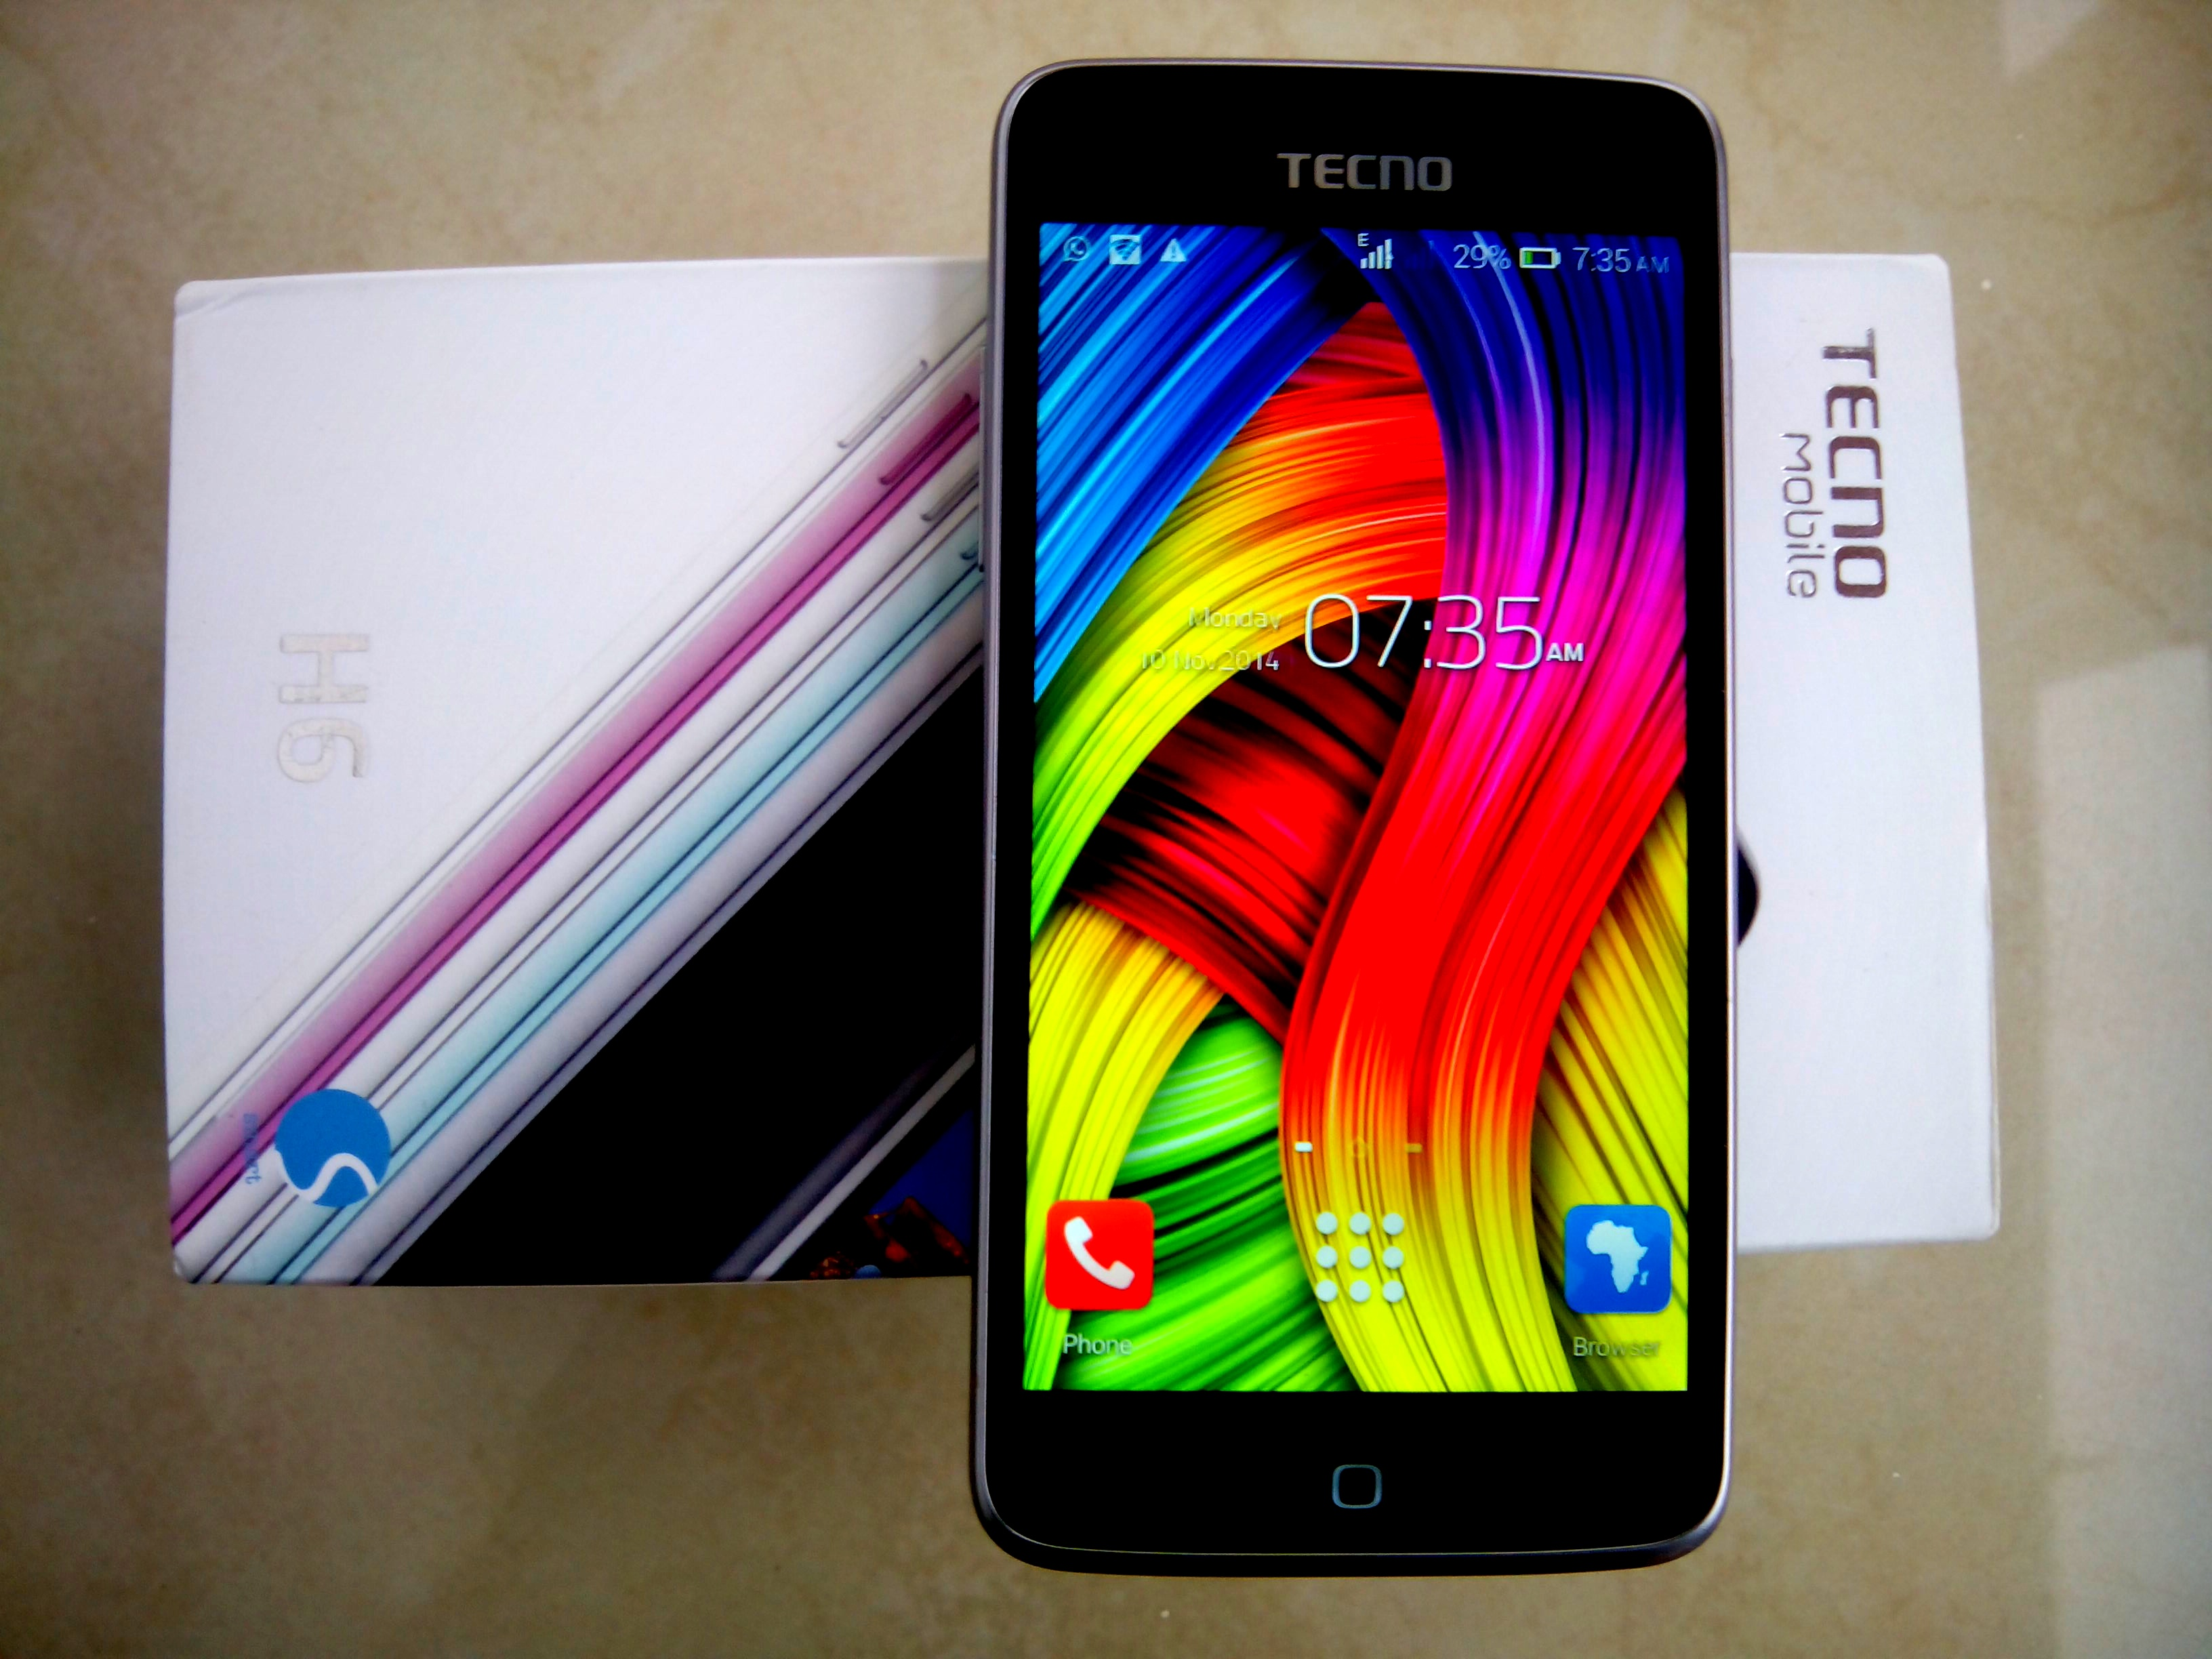 Tecno H6 Review The Lowest Price We Ve Seen For A Power Packed Mid Range Smartphone Dignited